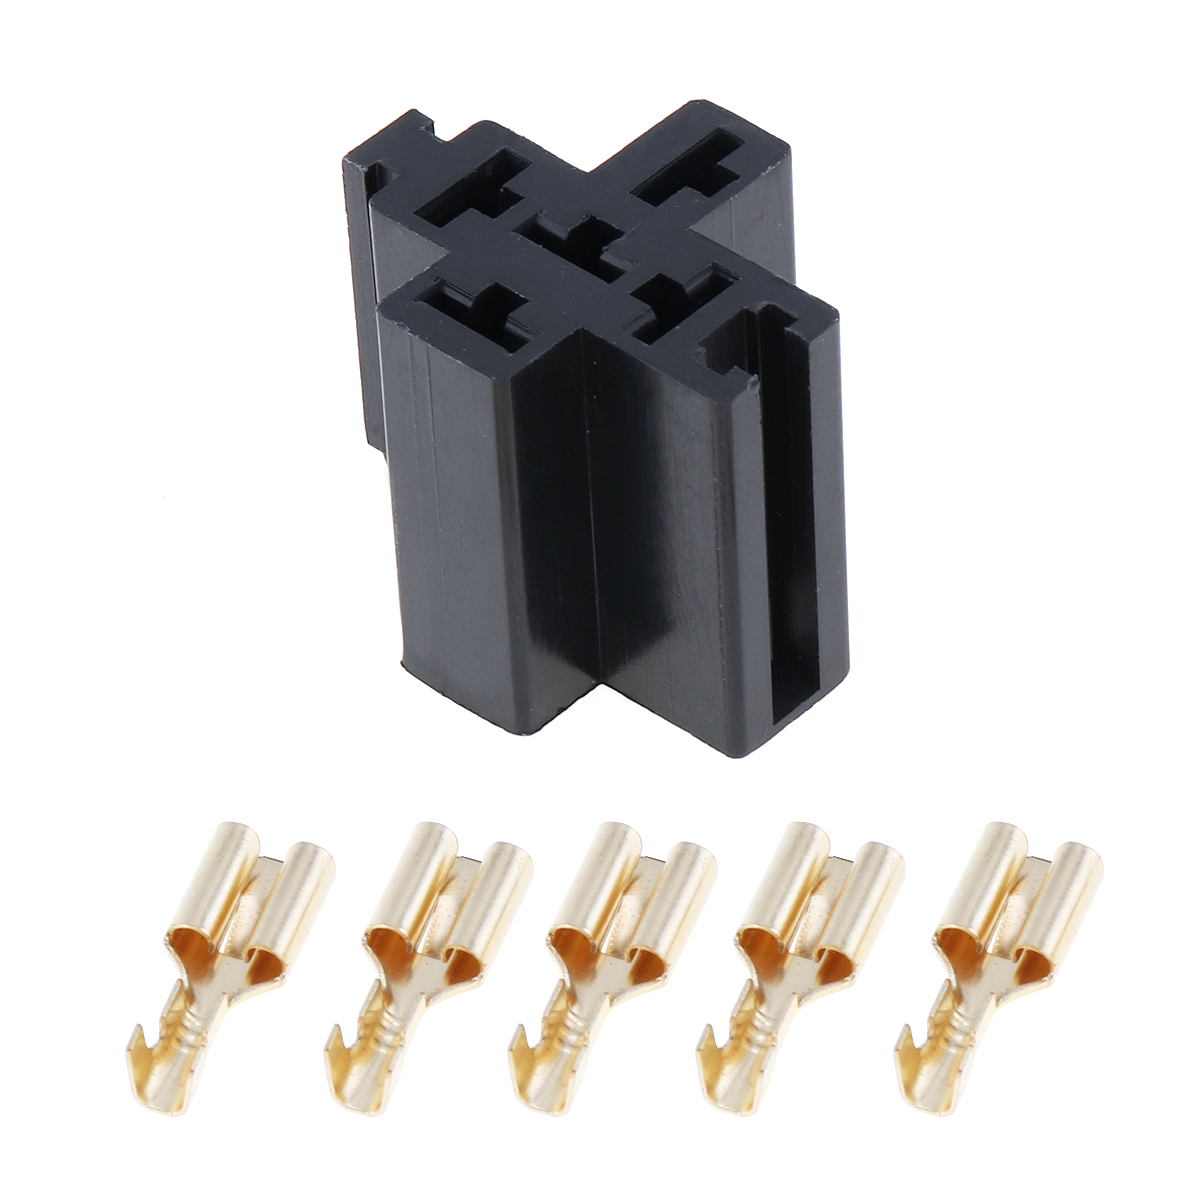 6-3mm-Car-Vehicle-5-Pin-Relay-Socket-Connector-Holder-with-5pcs-Copper-Terminal